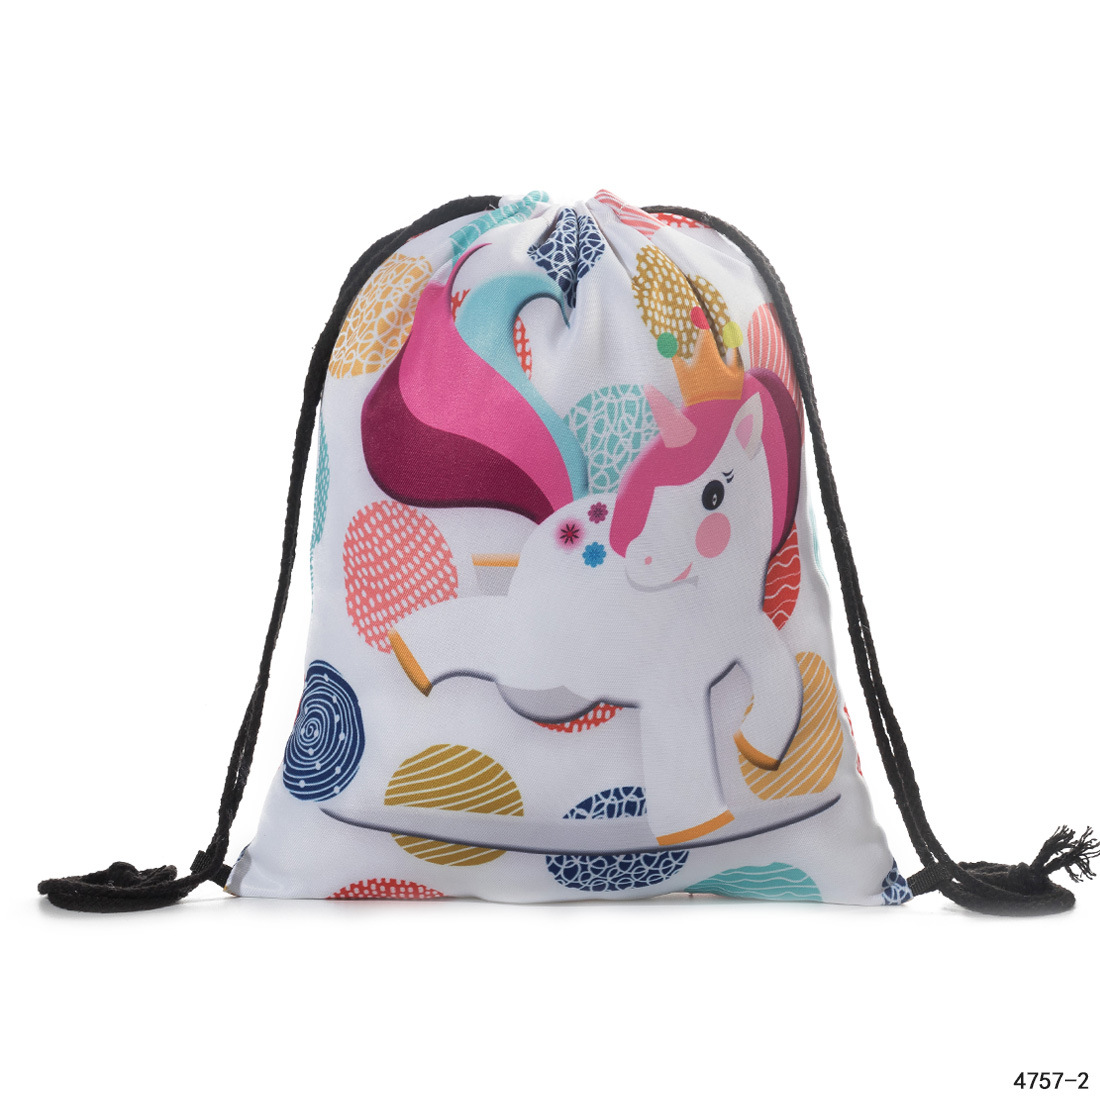 Hot Selling Unicorn Shopping 3D Digital Printed Cinch Top Bag Drawstring Backpack Storage Bag 3 Pieces String Bags  For Sale